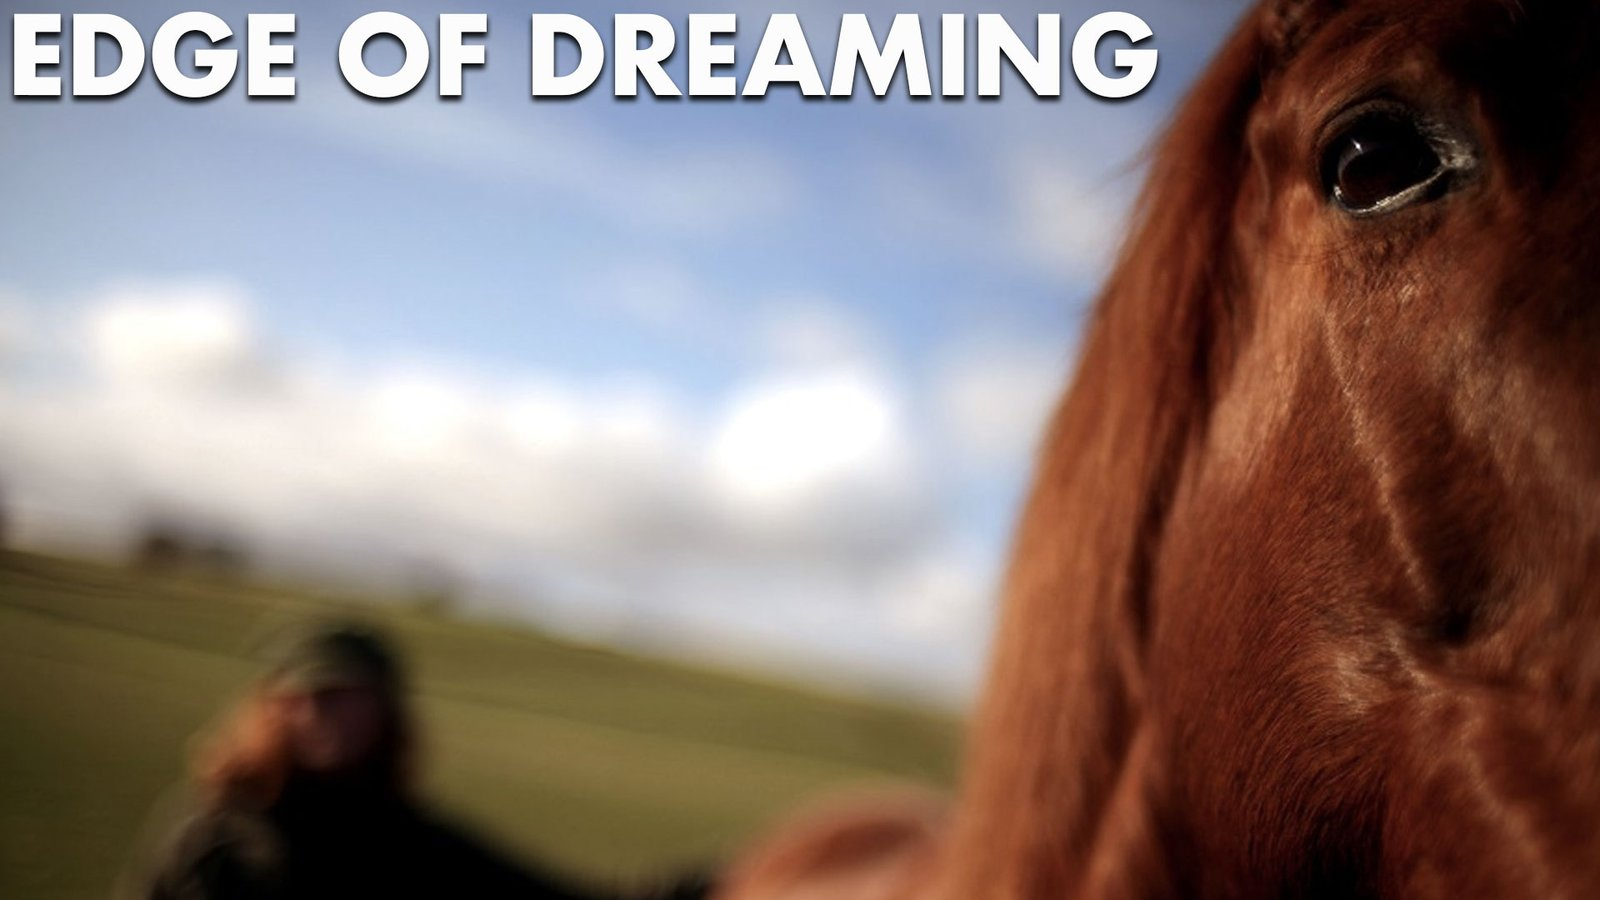 Edge Of Dreaming - The Meaning of Dreams